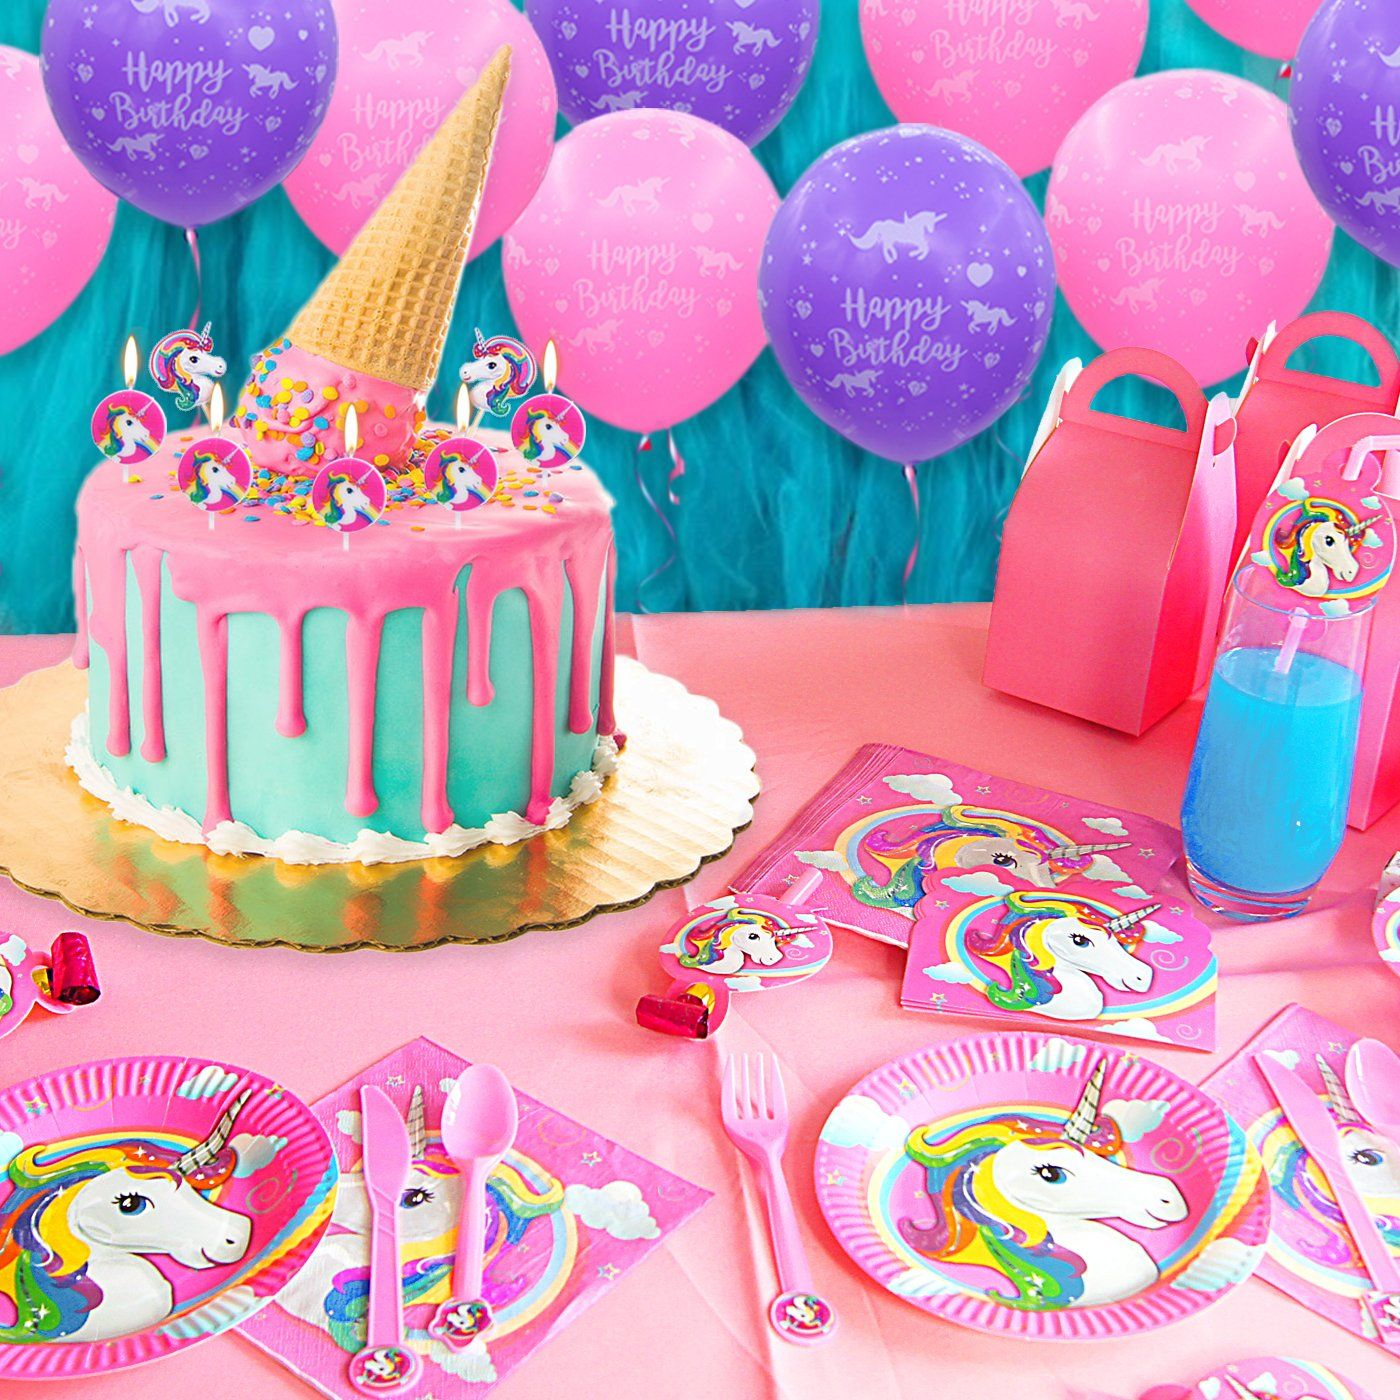 Pawliss 145ct Unicorn Birthday Party Decorations Supplies Kit Favor Boxe Unicorn Birthday Party Decorations Birthday Party Decorations Unicorn Birthday Parties